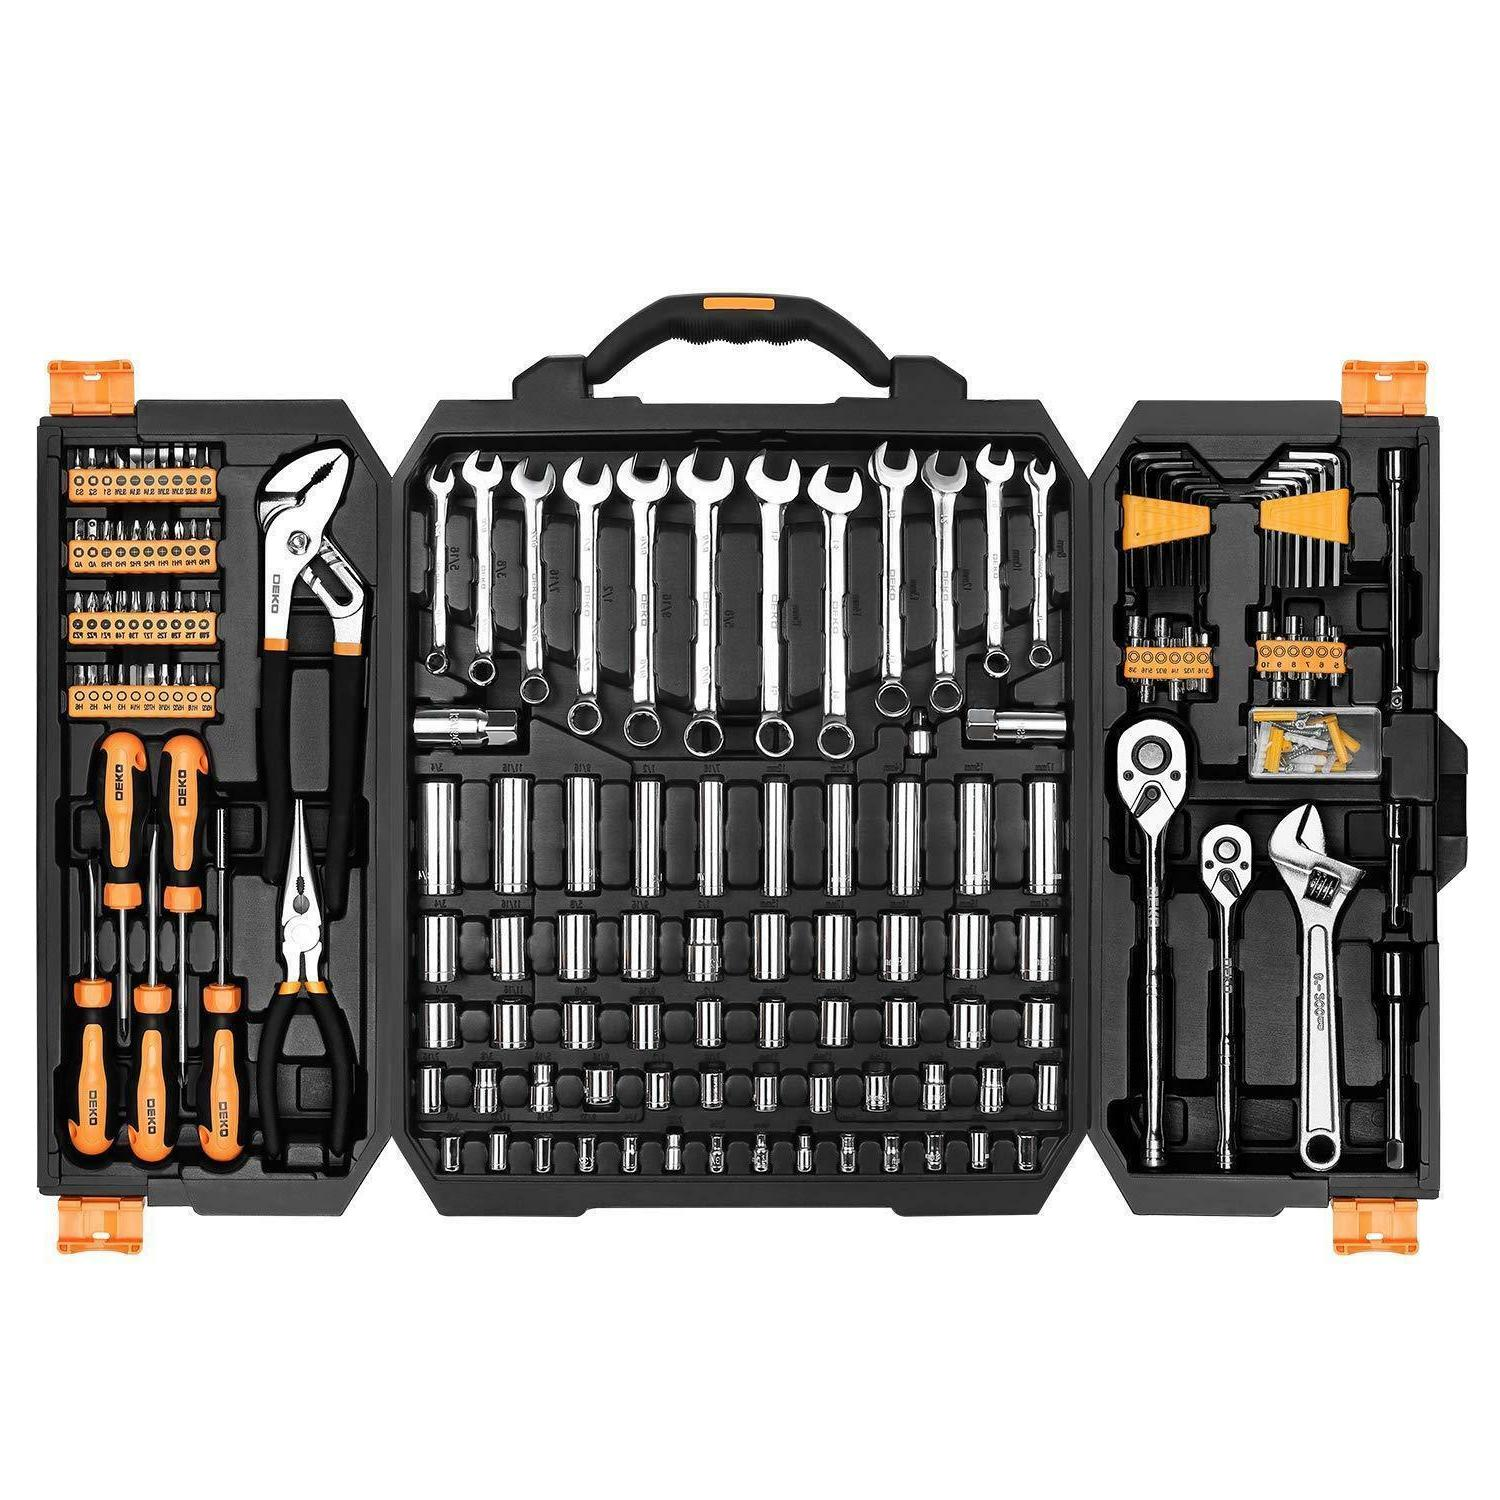 192 Tool Set Auto Repair Hand Kit